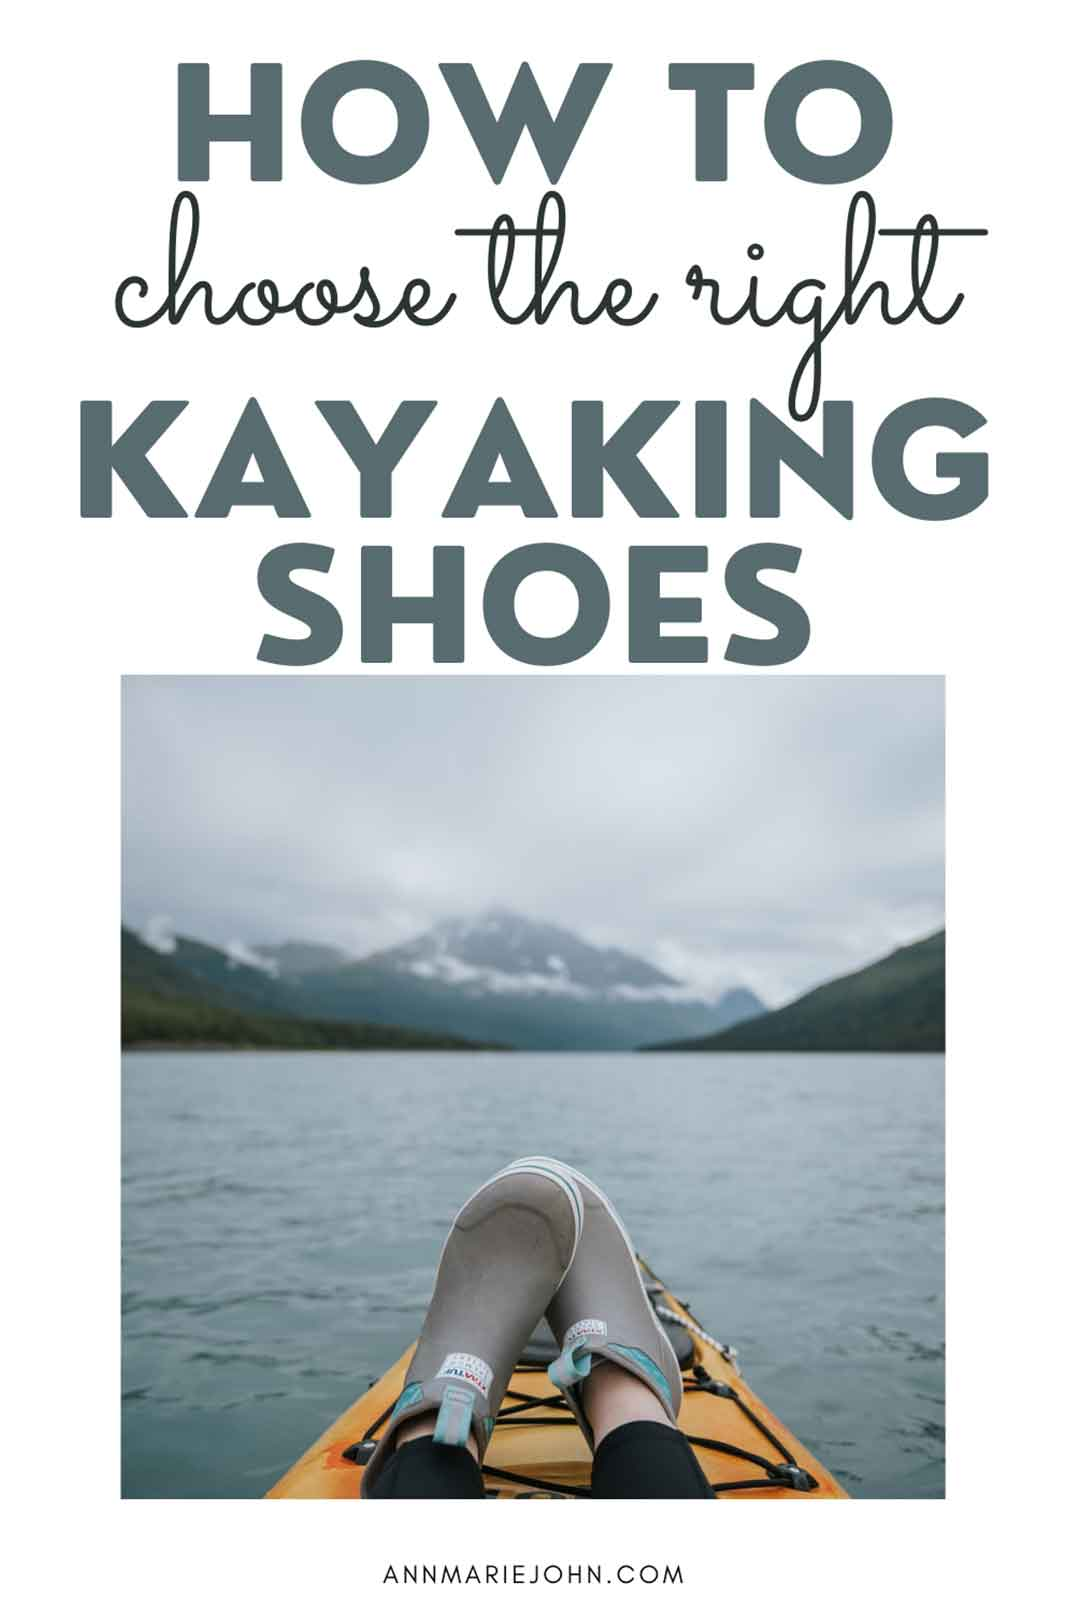 How to Choose the Right Kayaking Shoes